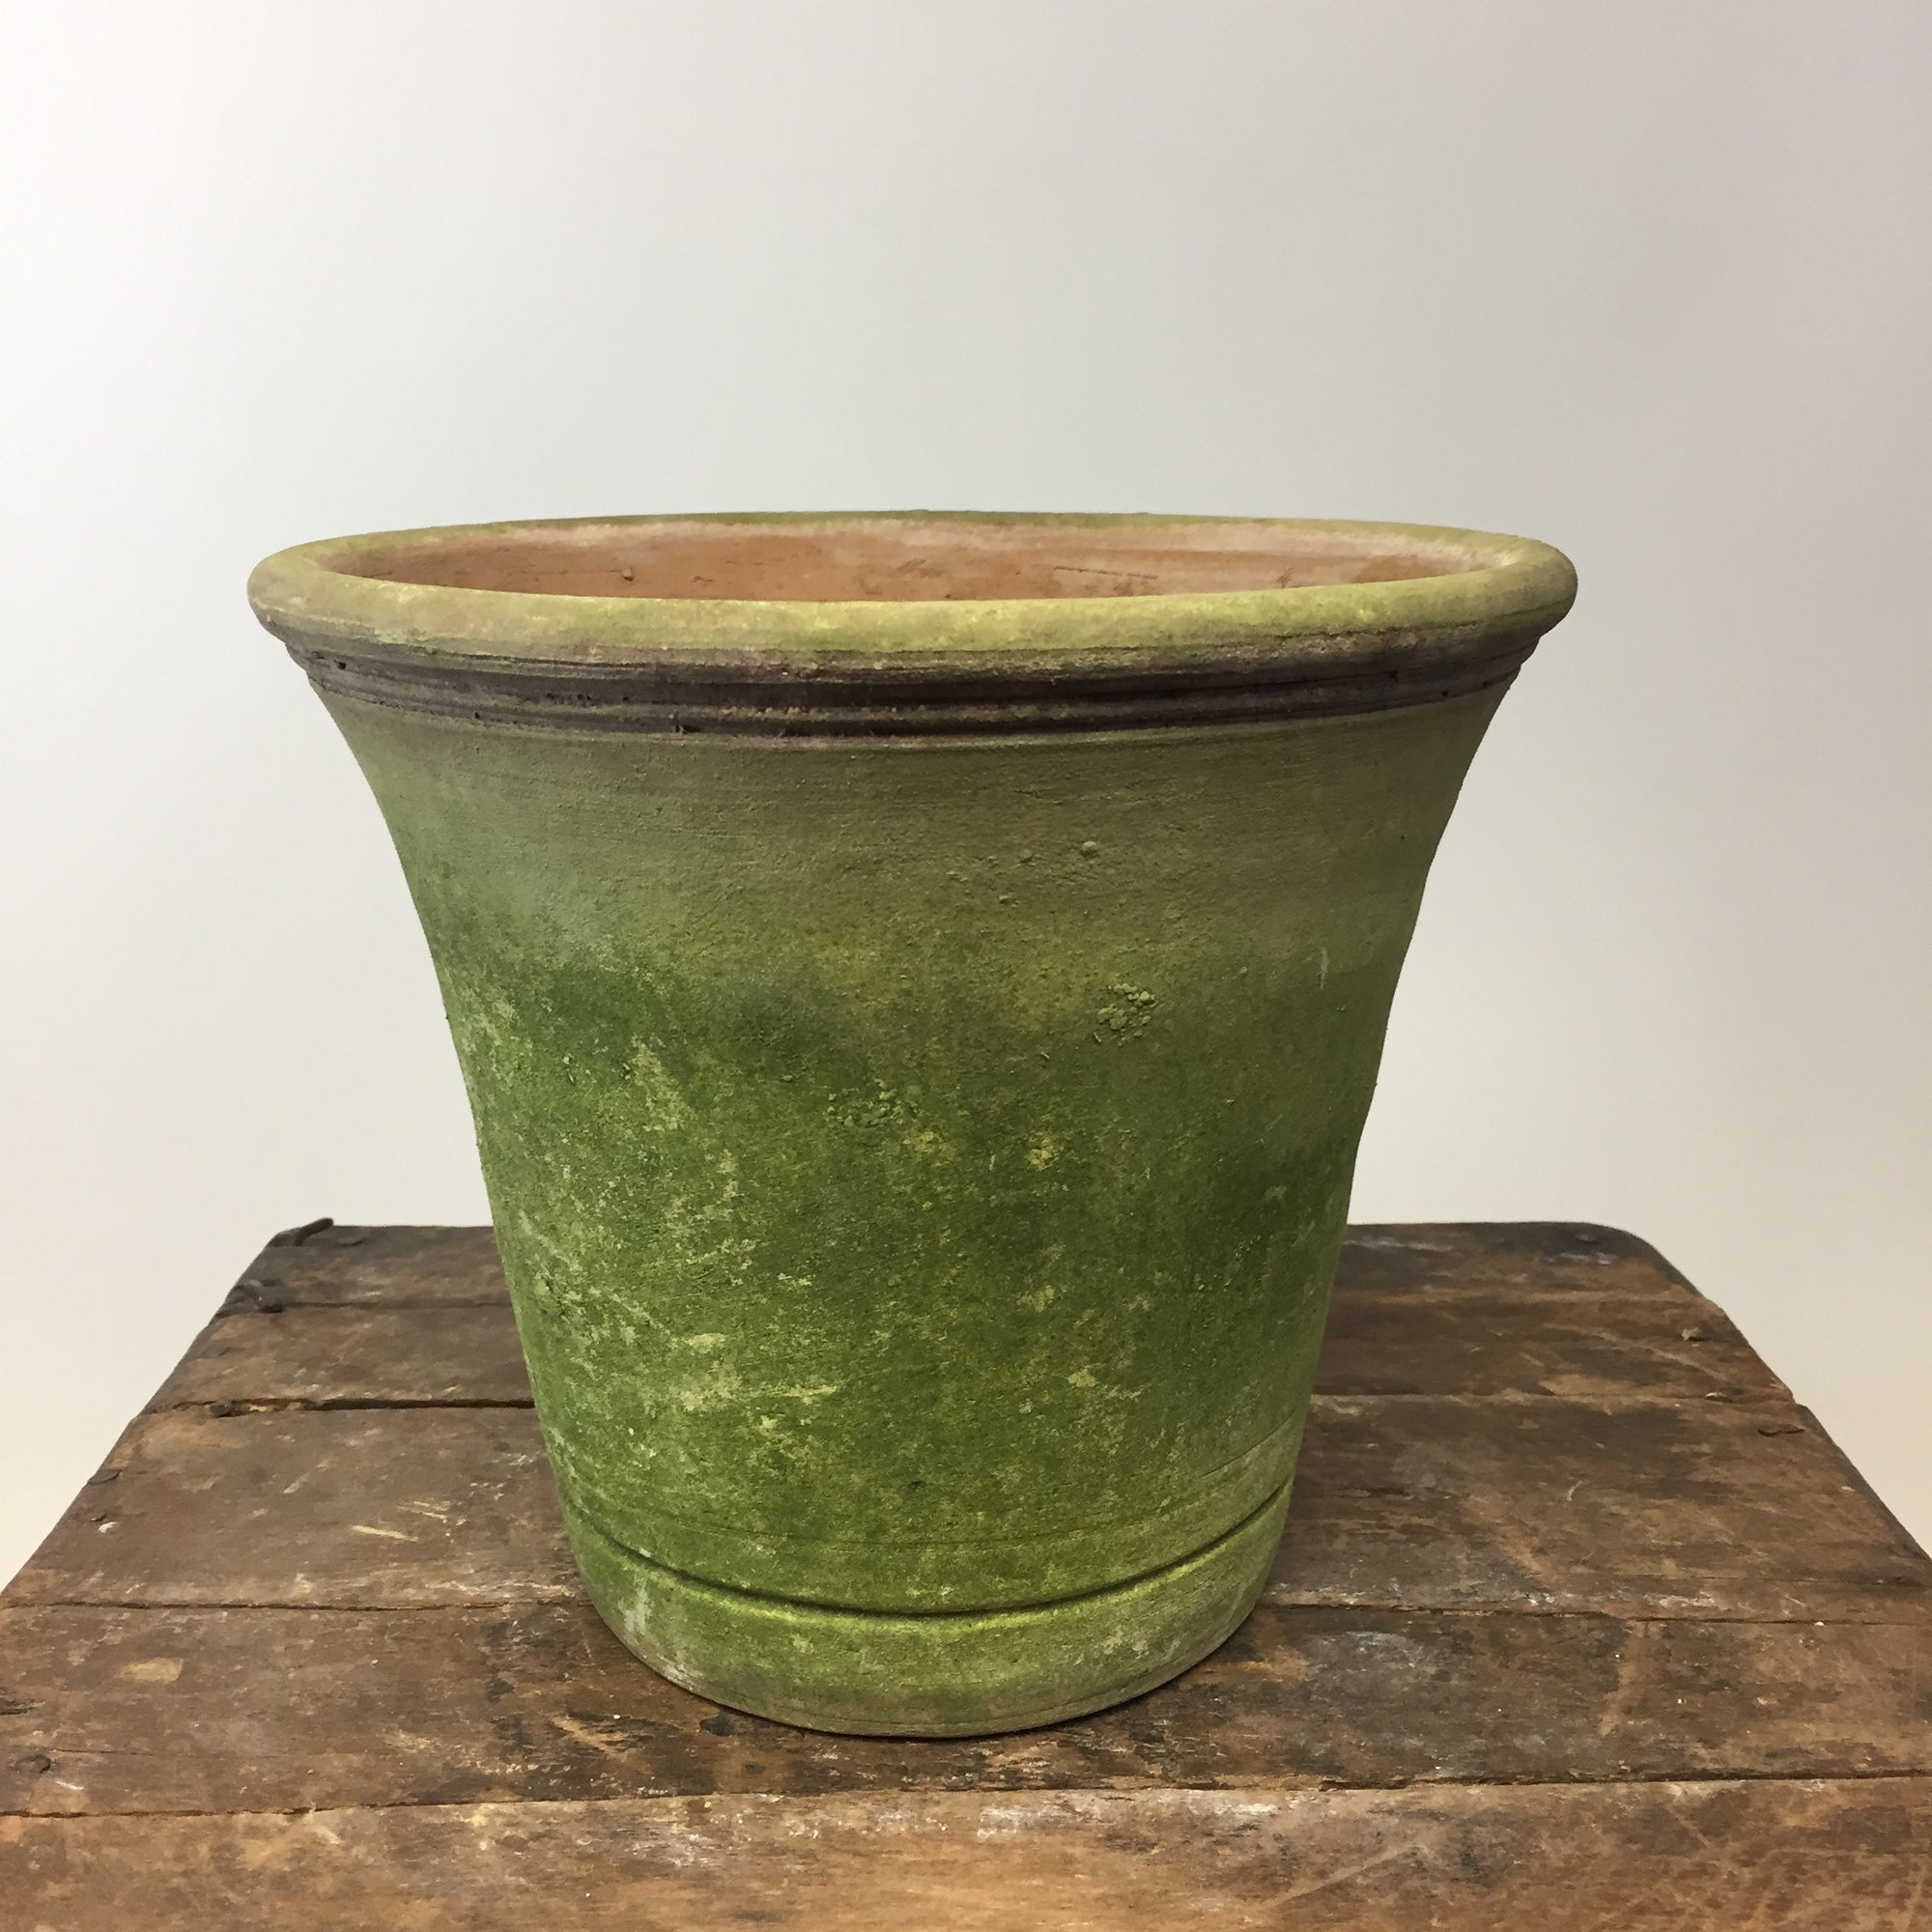 English Nursery Terracotta Planter with Aged Moss. 6""